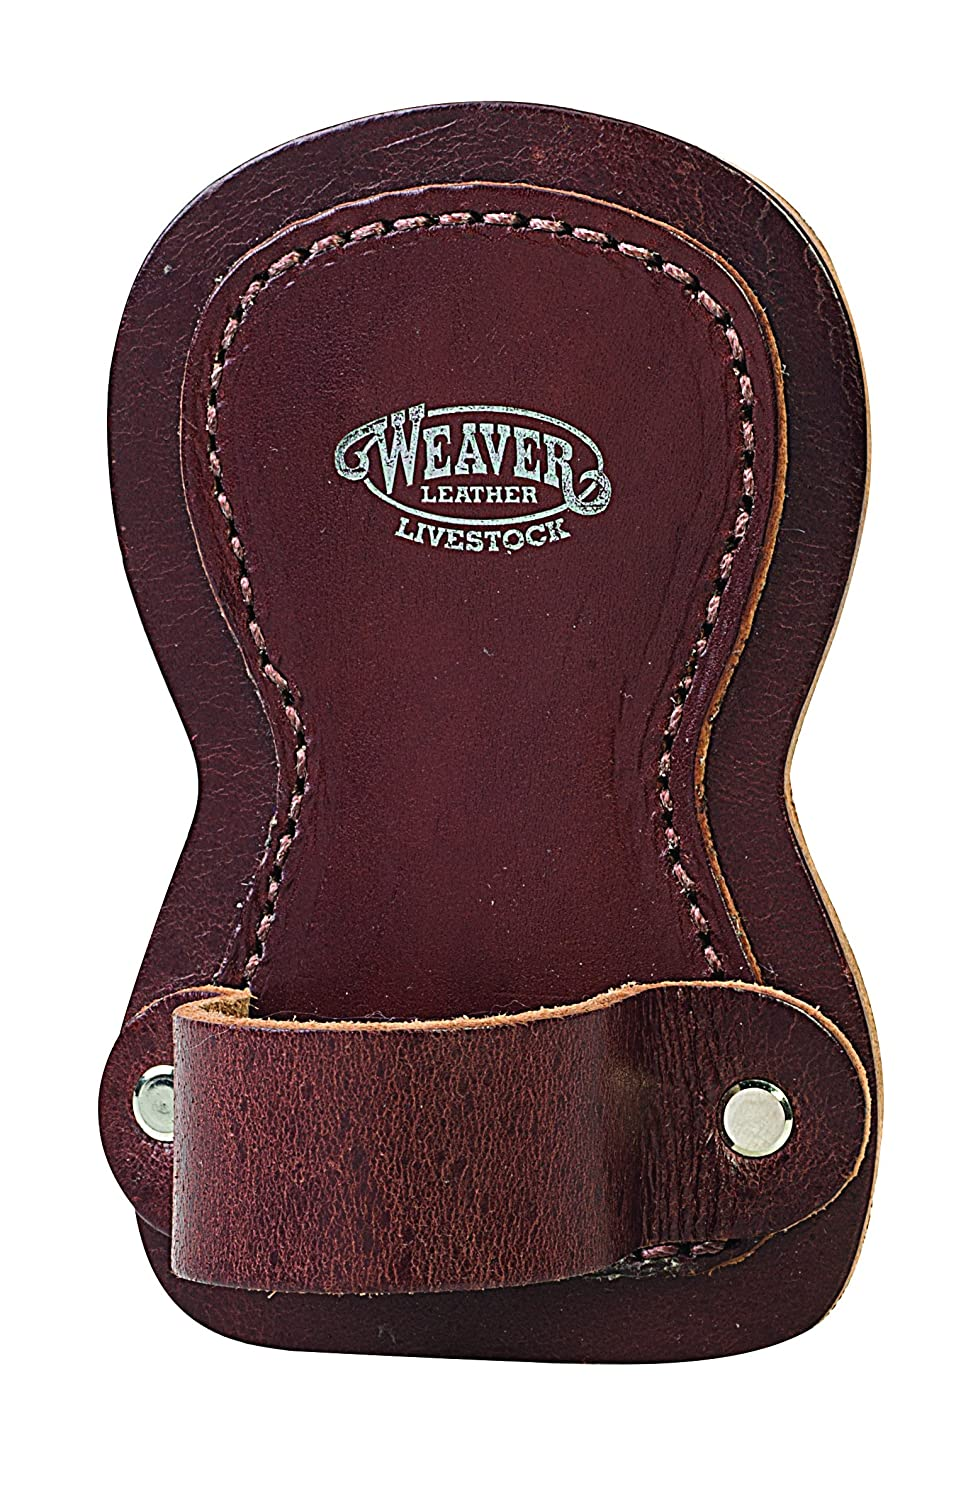 Weaver Leather Livestock Leather Show Comb Holder, Brown Weaver Leather Livestock Leather Show Comb Holder